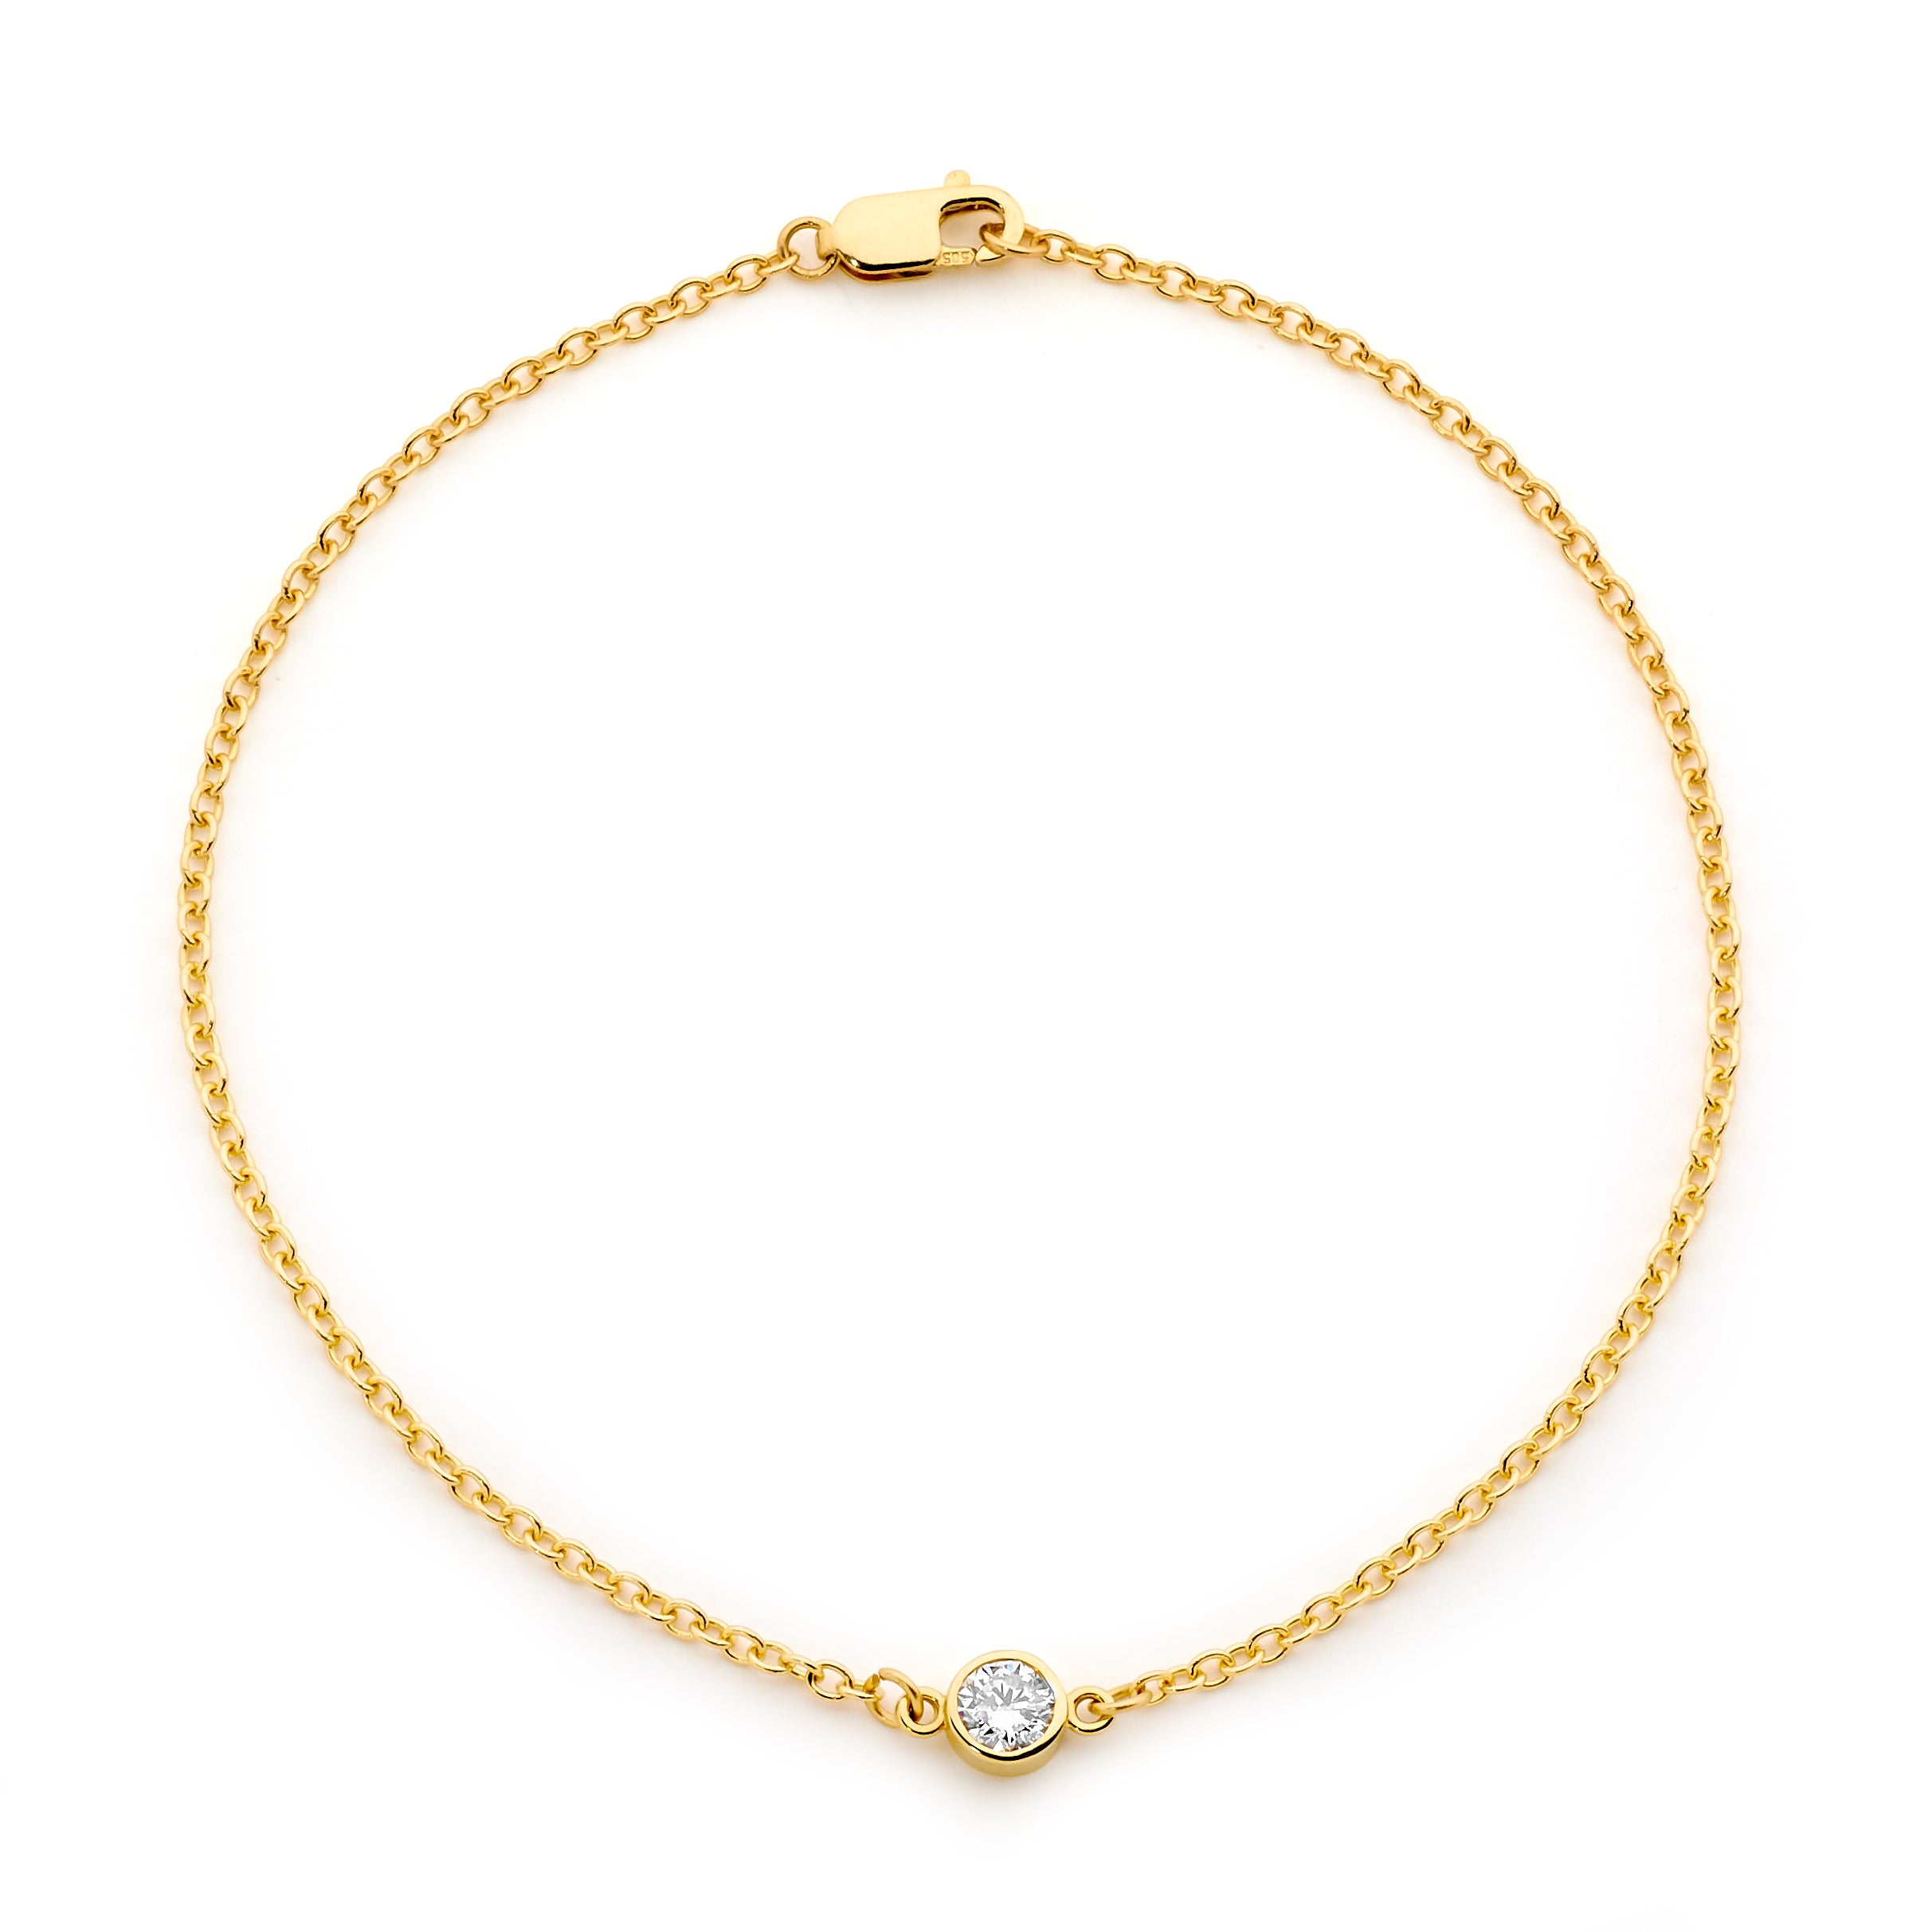 18CT GOLD SOLITAIRE DIAMOND BRACELET